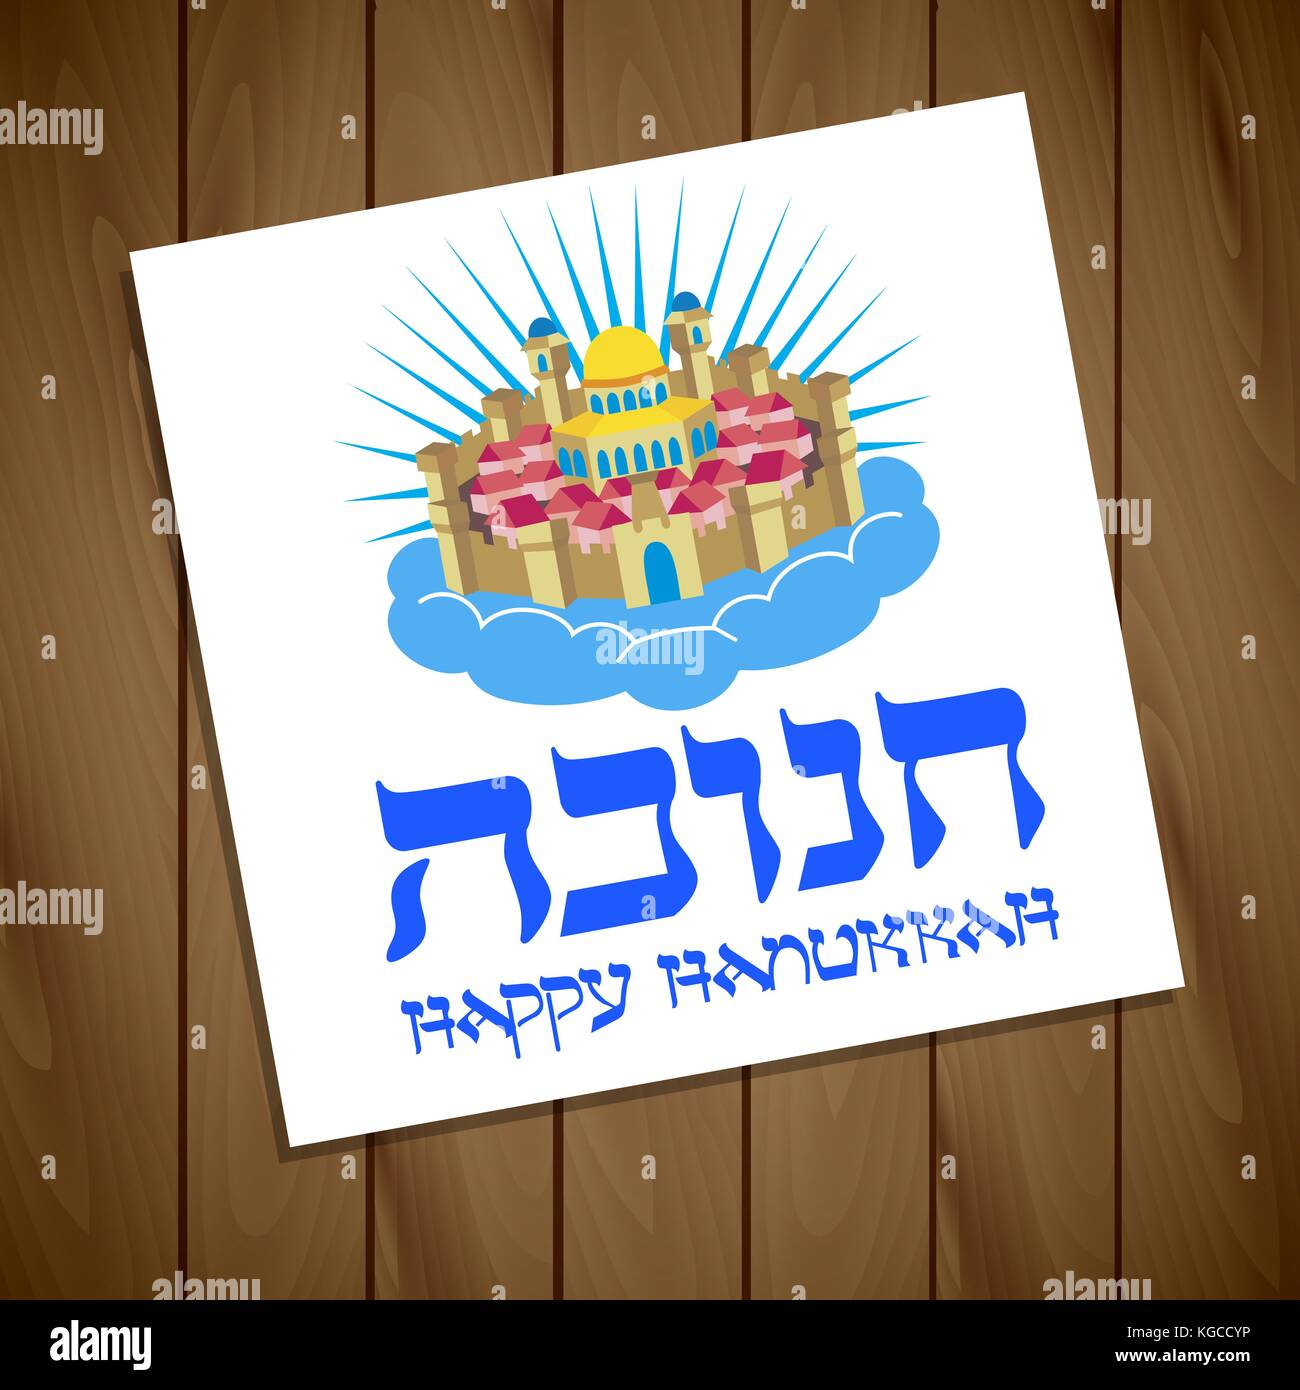 Holiday Background with Hebrew text - Happy Hanukkah  - Stock Vector